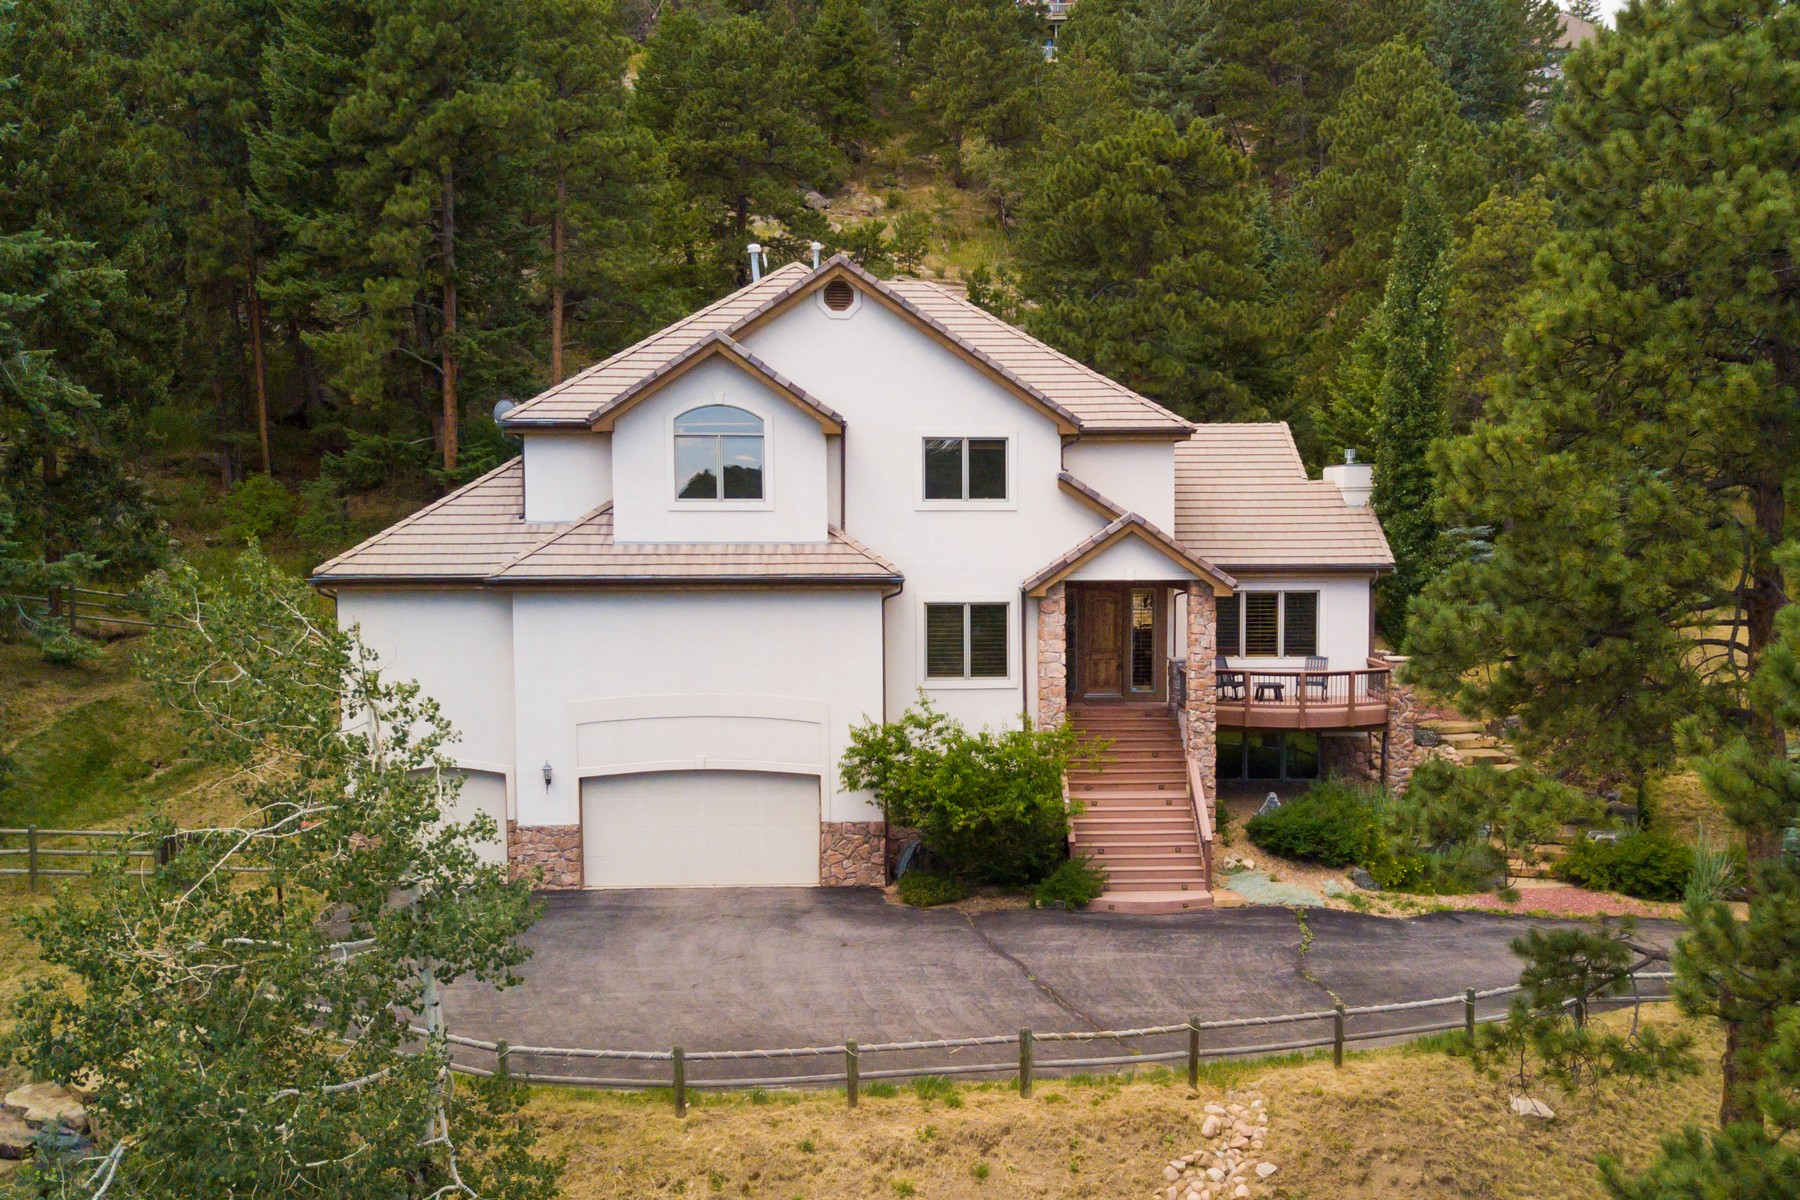 Single Family Home for Active at Relaxed Yet Sophisticated 24999 North Mountain Park Drive Evergreen, Colorado 80439 United States